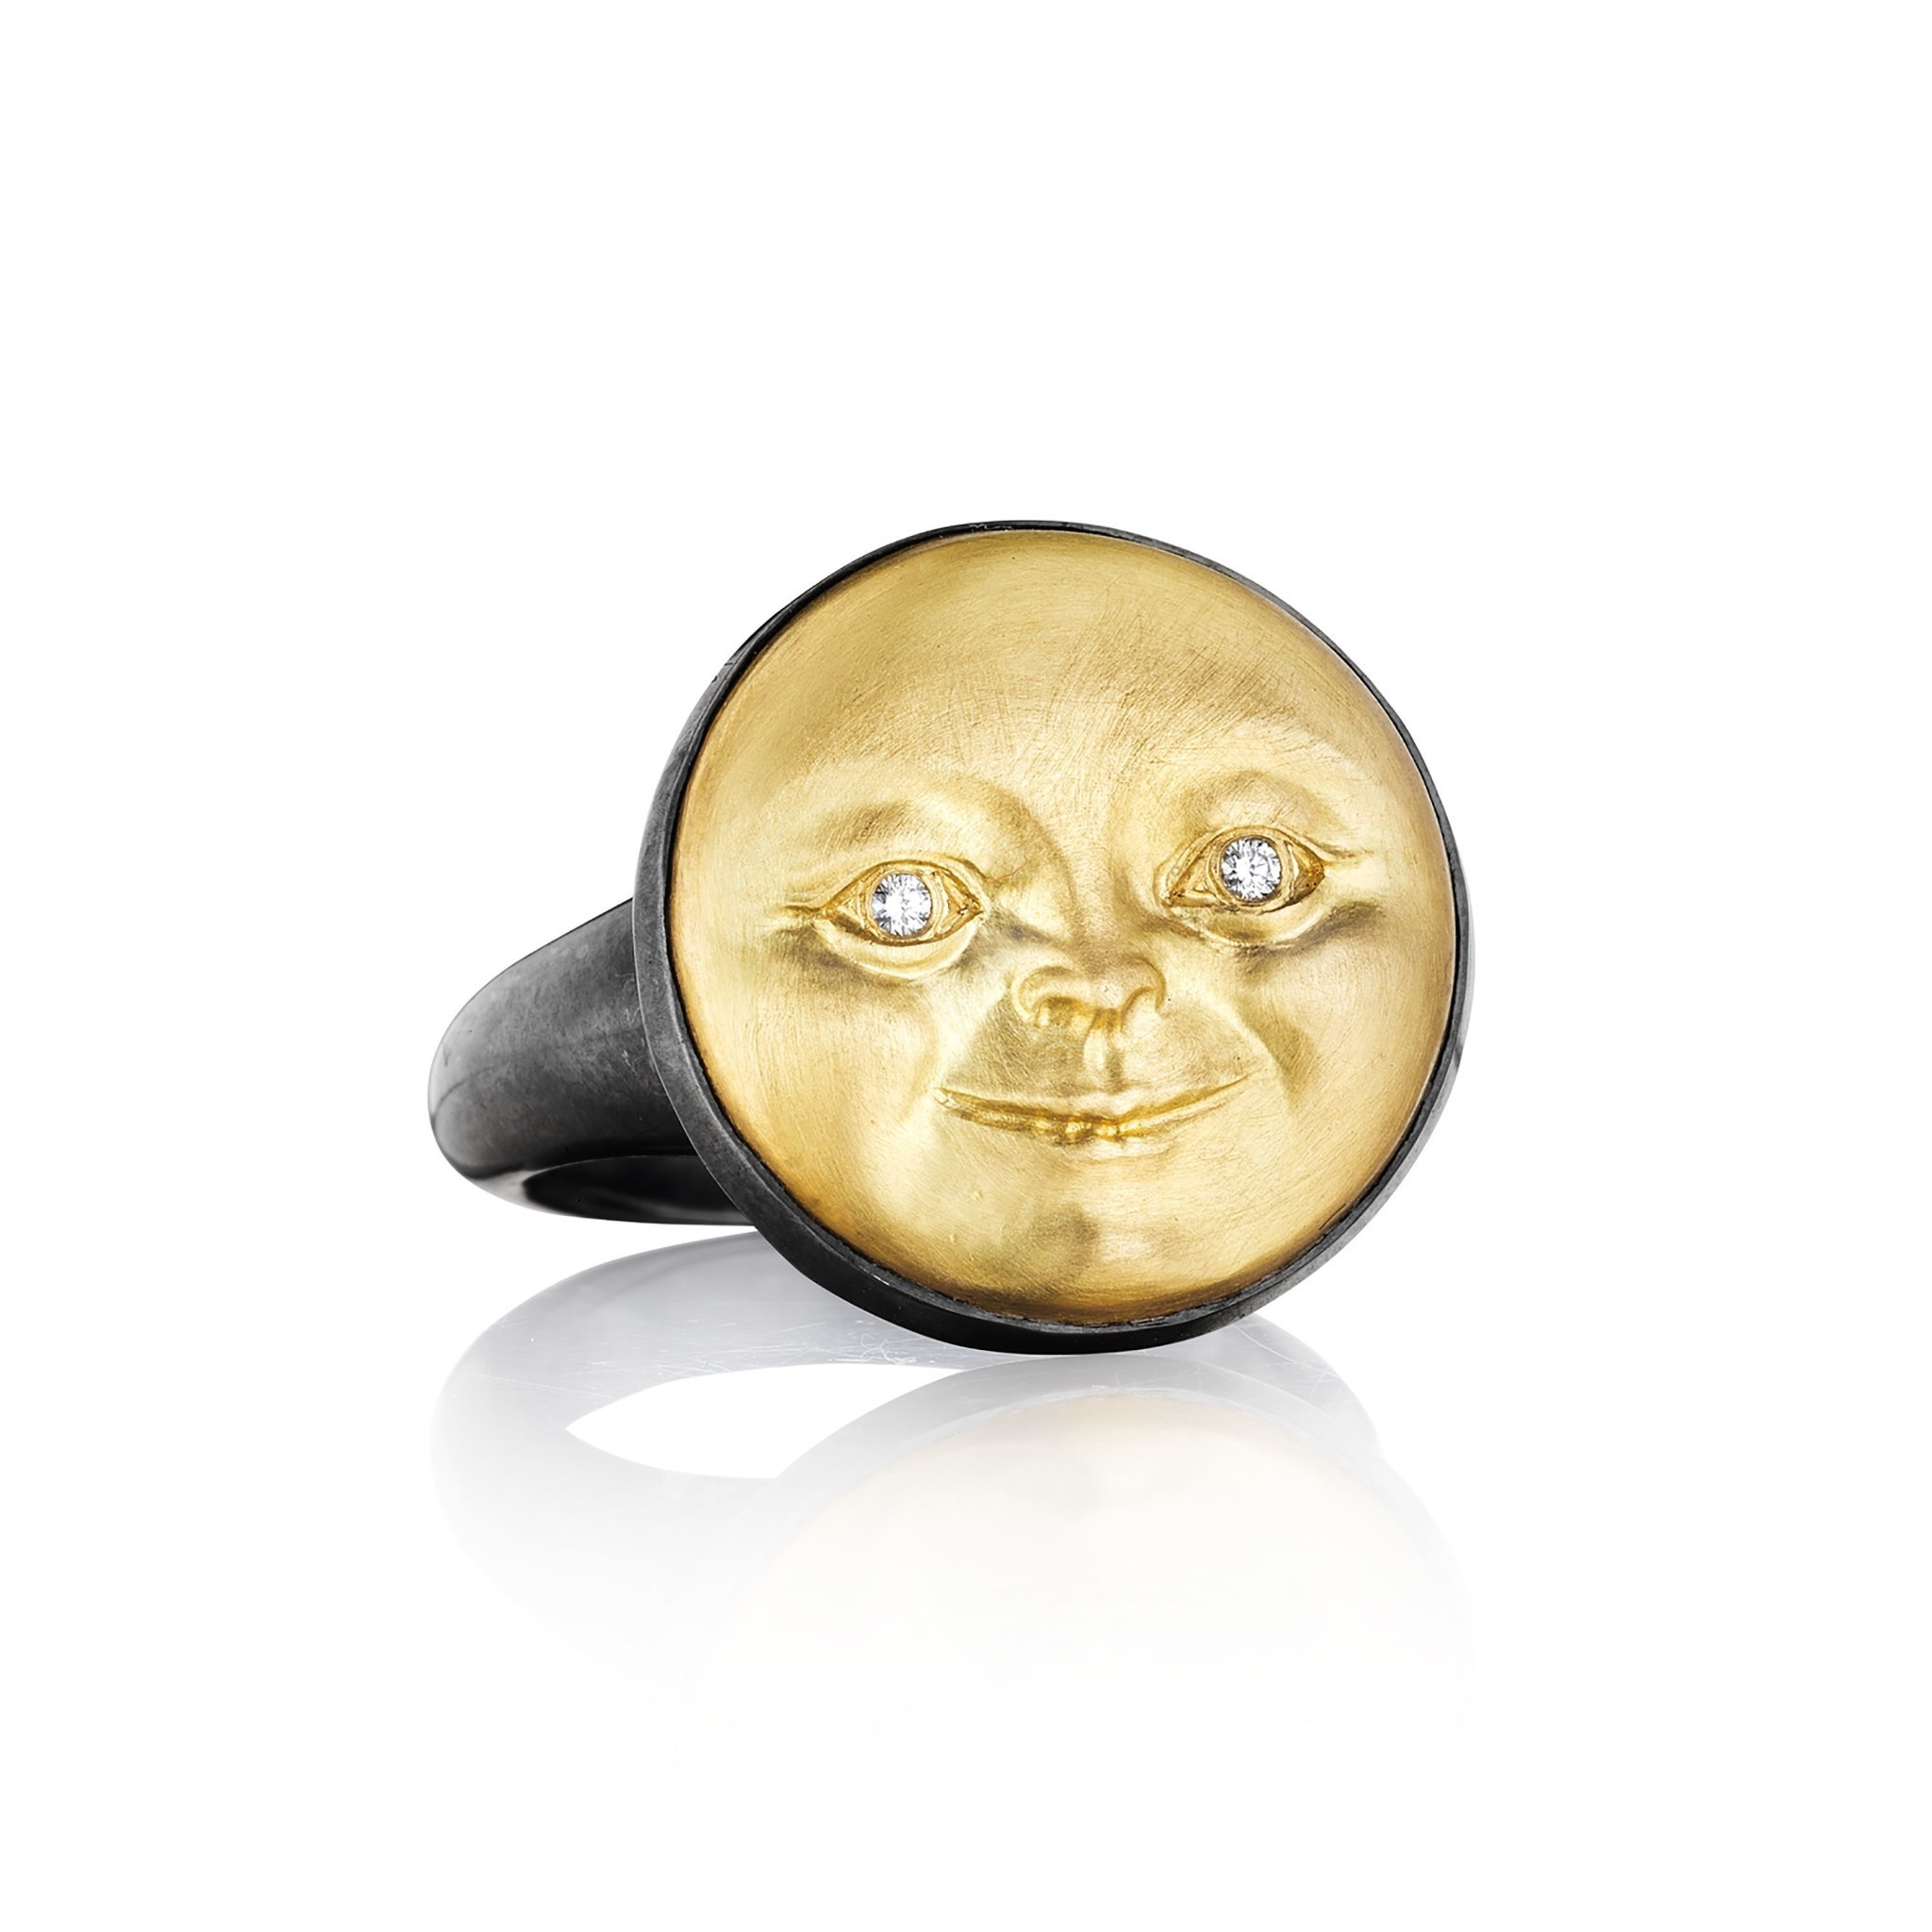 6 New Fine Jewelry Designers to Fancy From the Couture Trade Show in Las Vegas